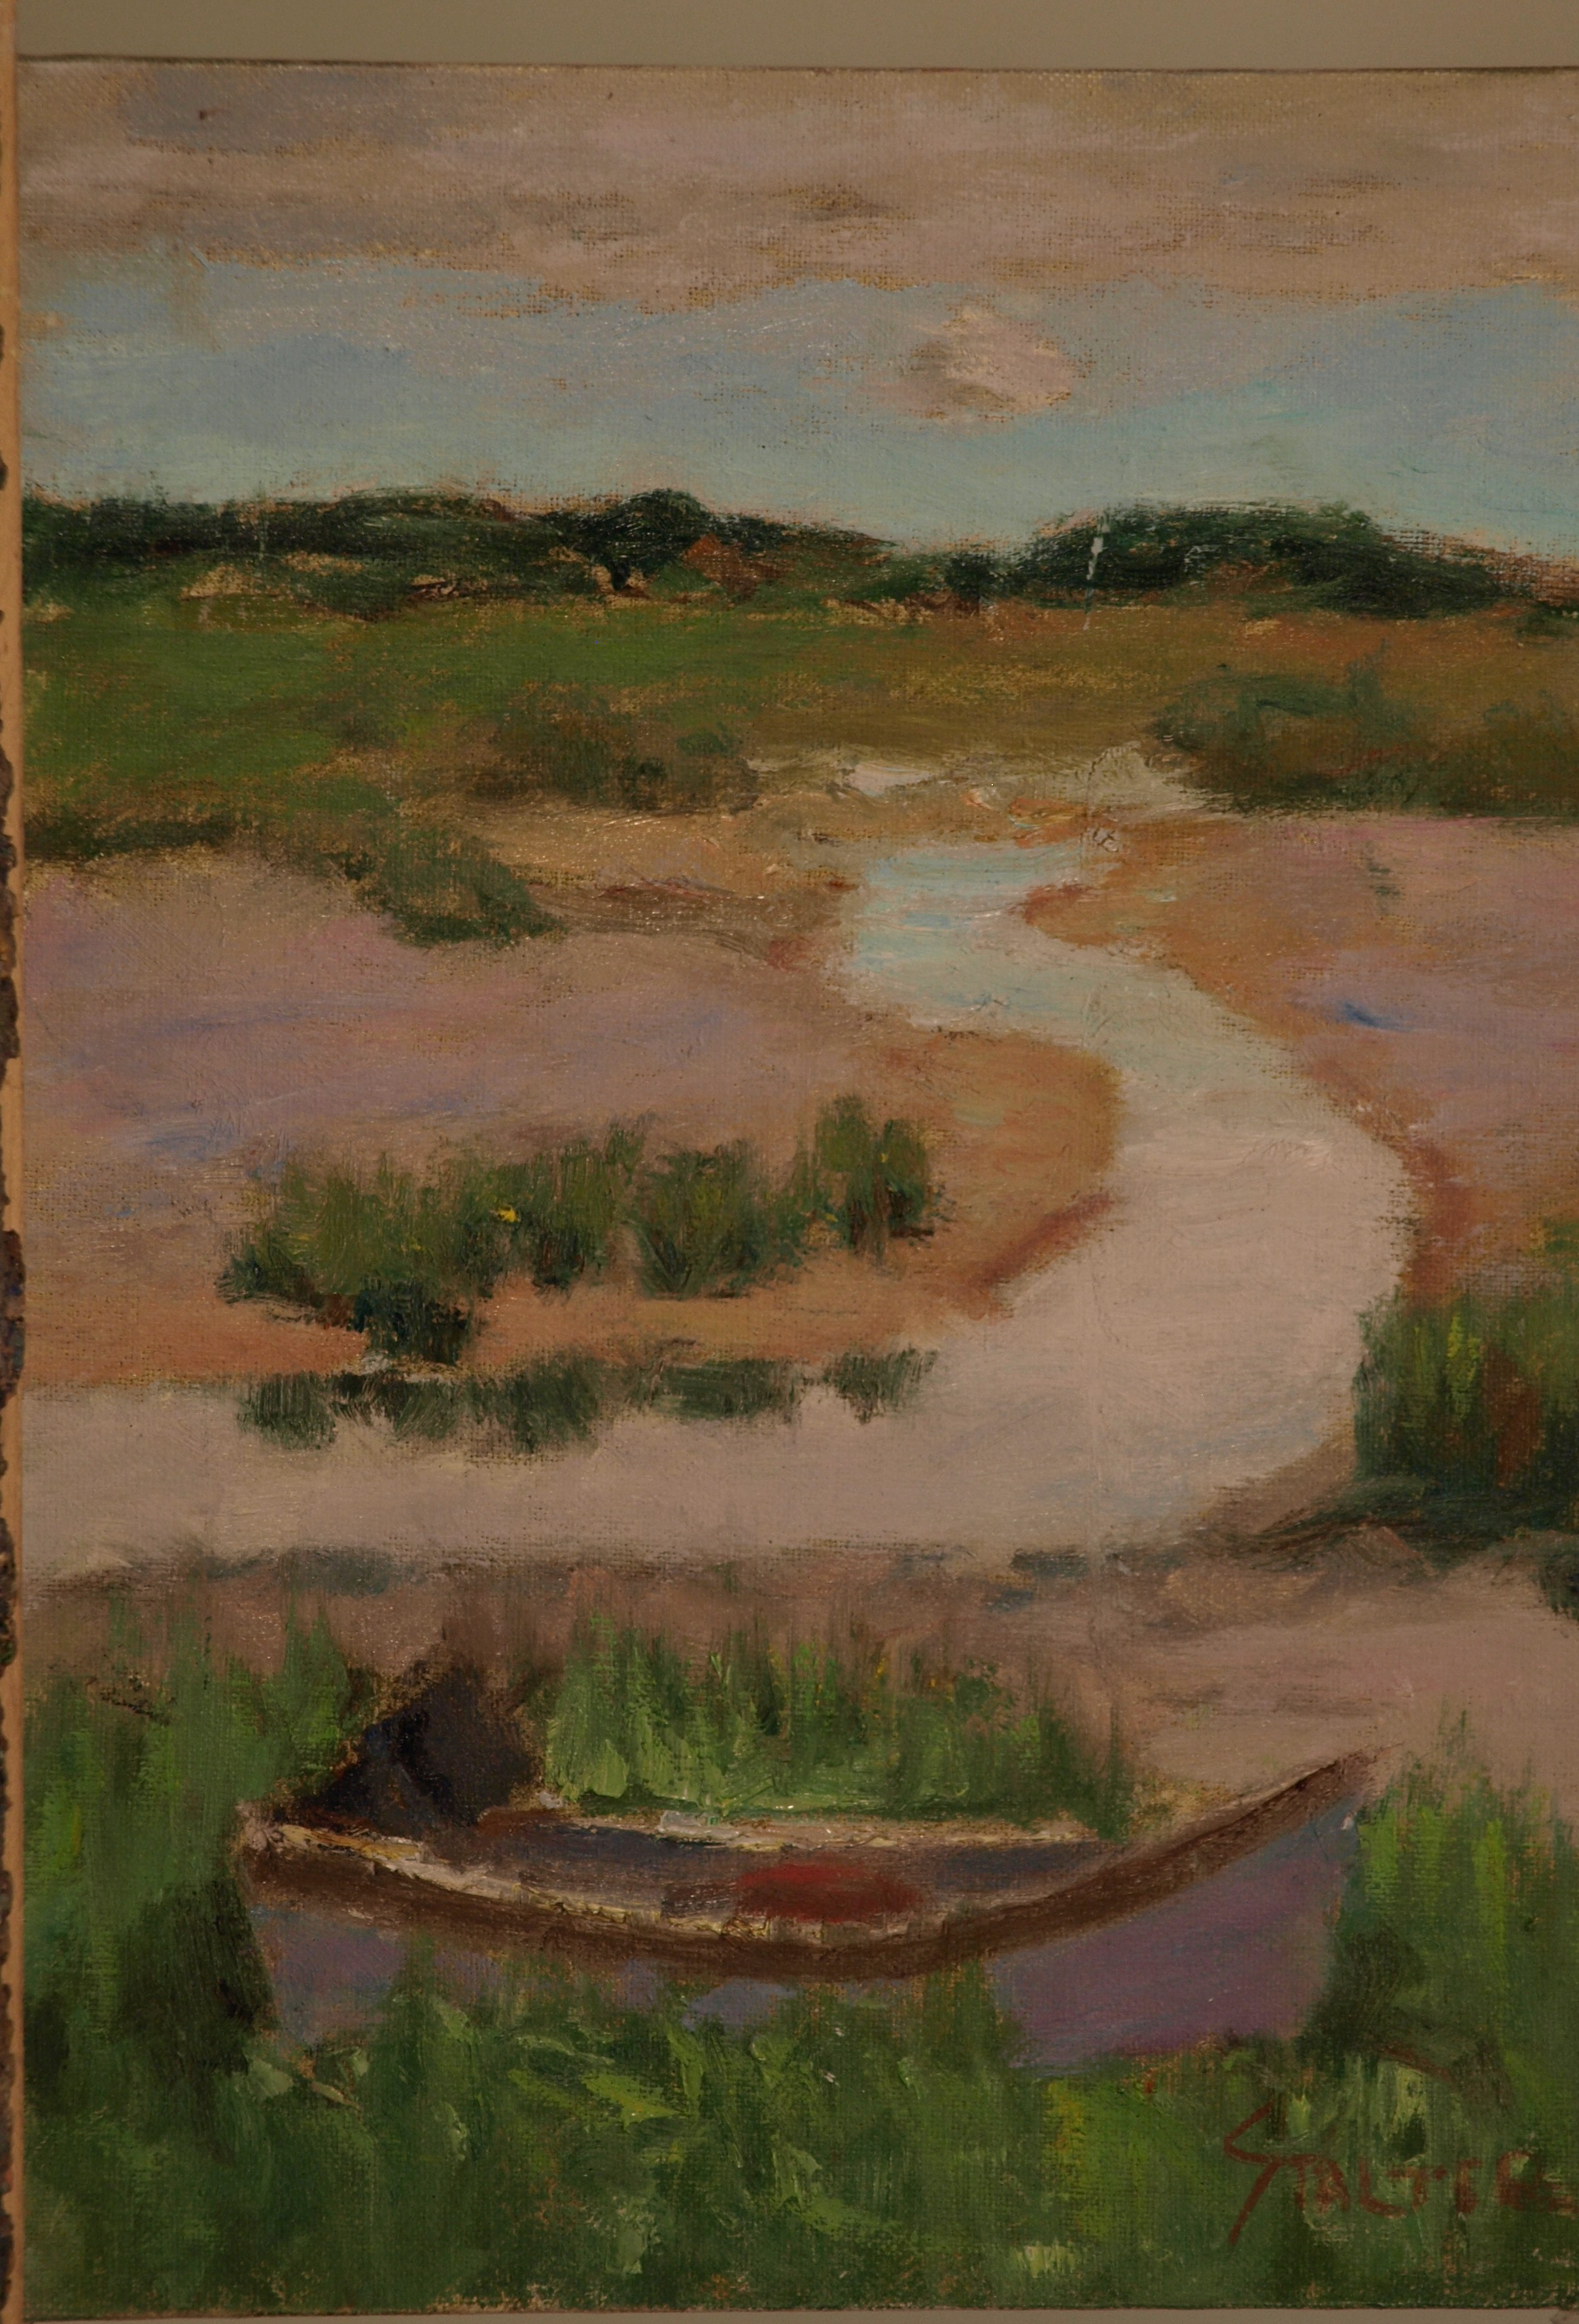 Low Tide -- Wellfleet, Oil on Canvas on Panel, 12 x 9 Inches, by Richard Stalter, $225